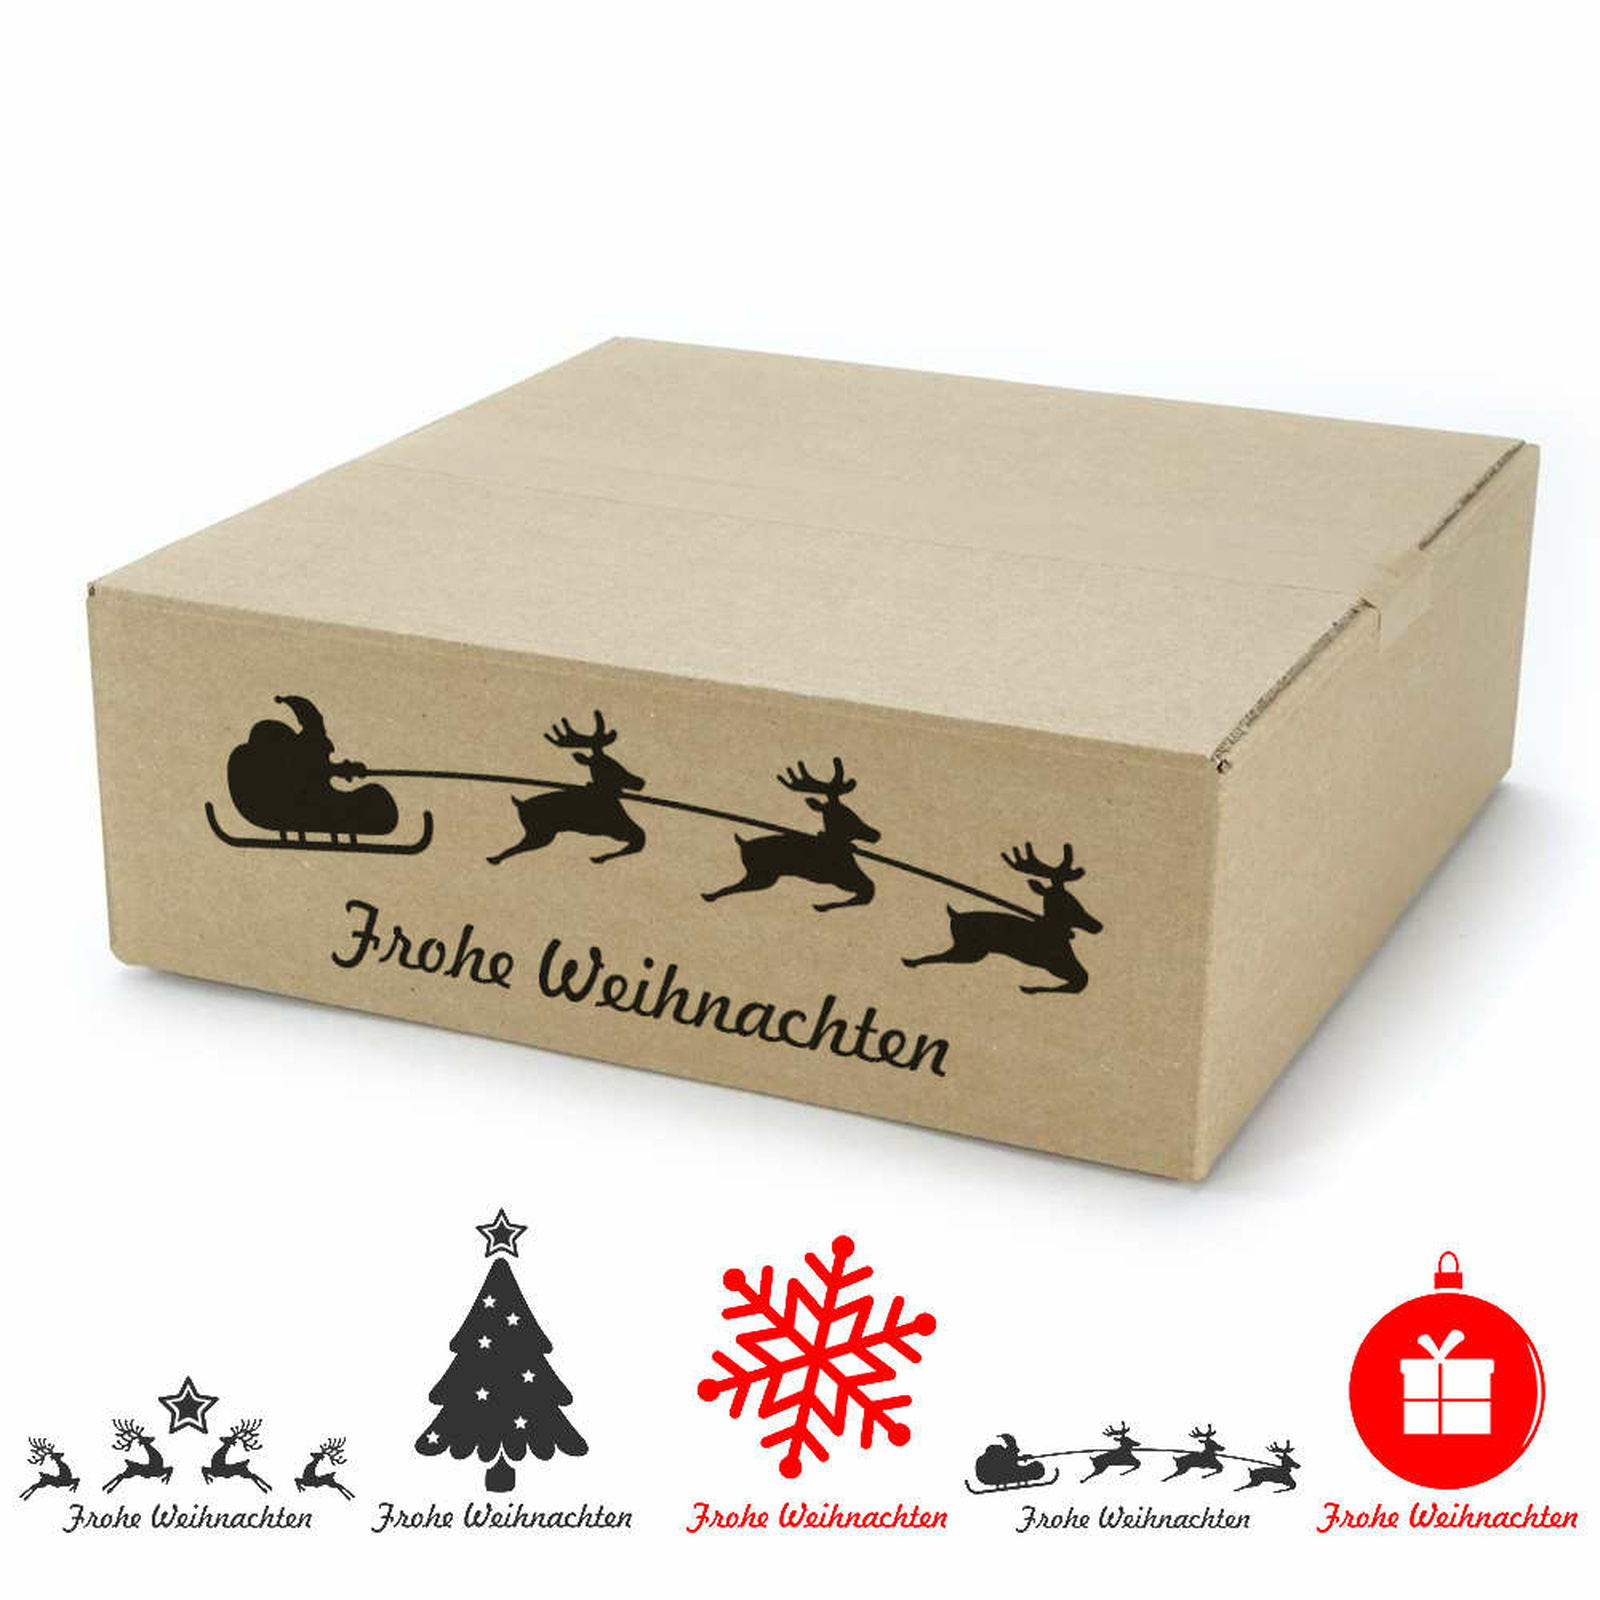 300x300x100 Mm Single Wall Cardboard Boxes With A Christmas Motif At